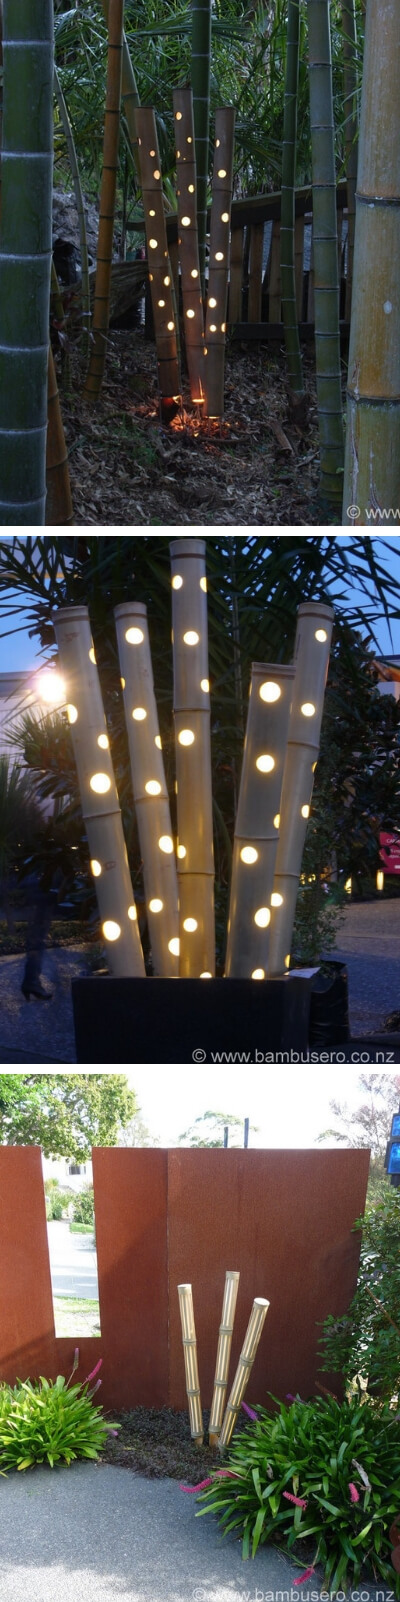 bamboo lights | Stunning Bamboo Craft Projects | FarmFoodFamily.com